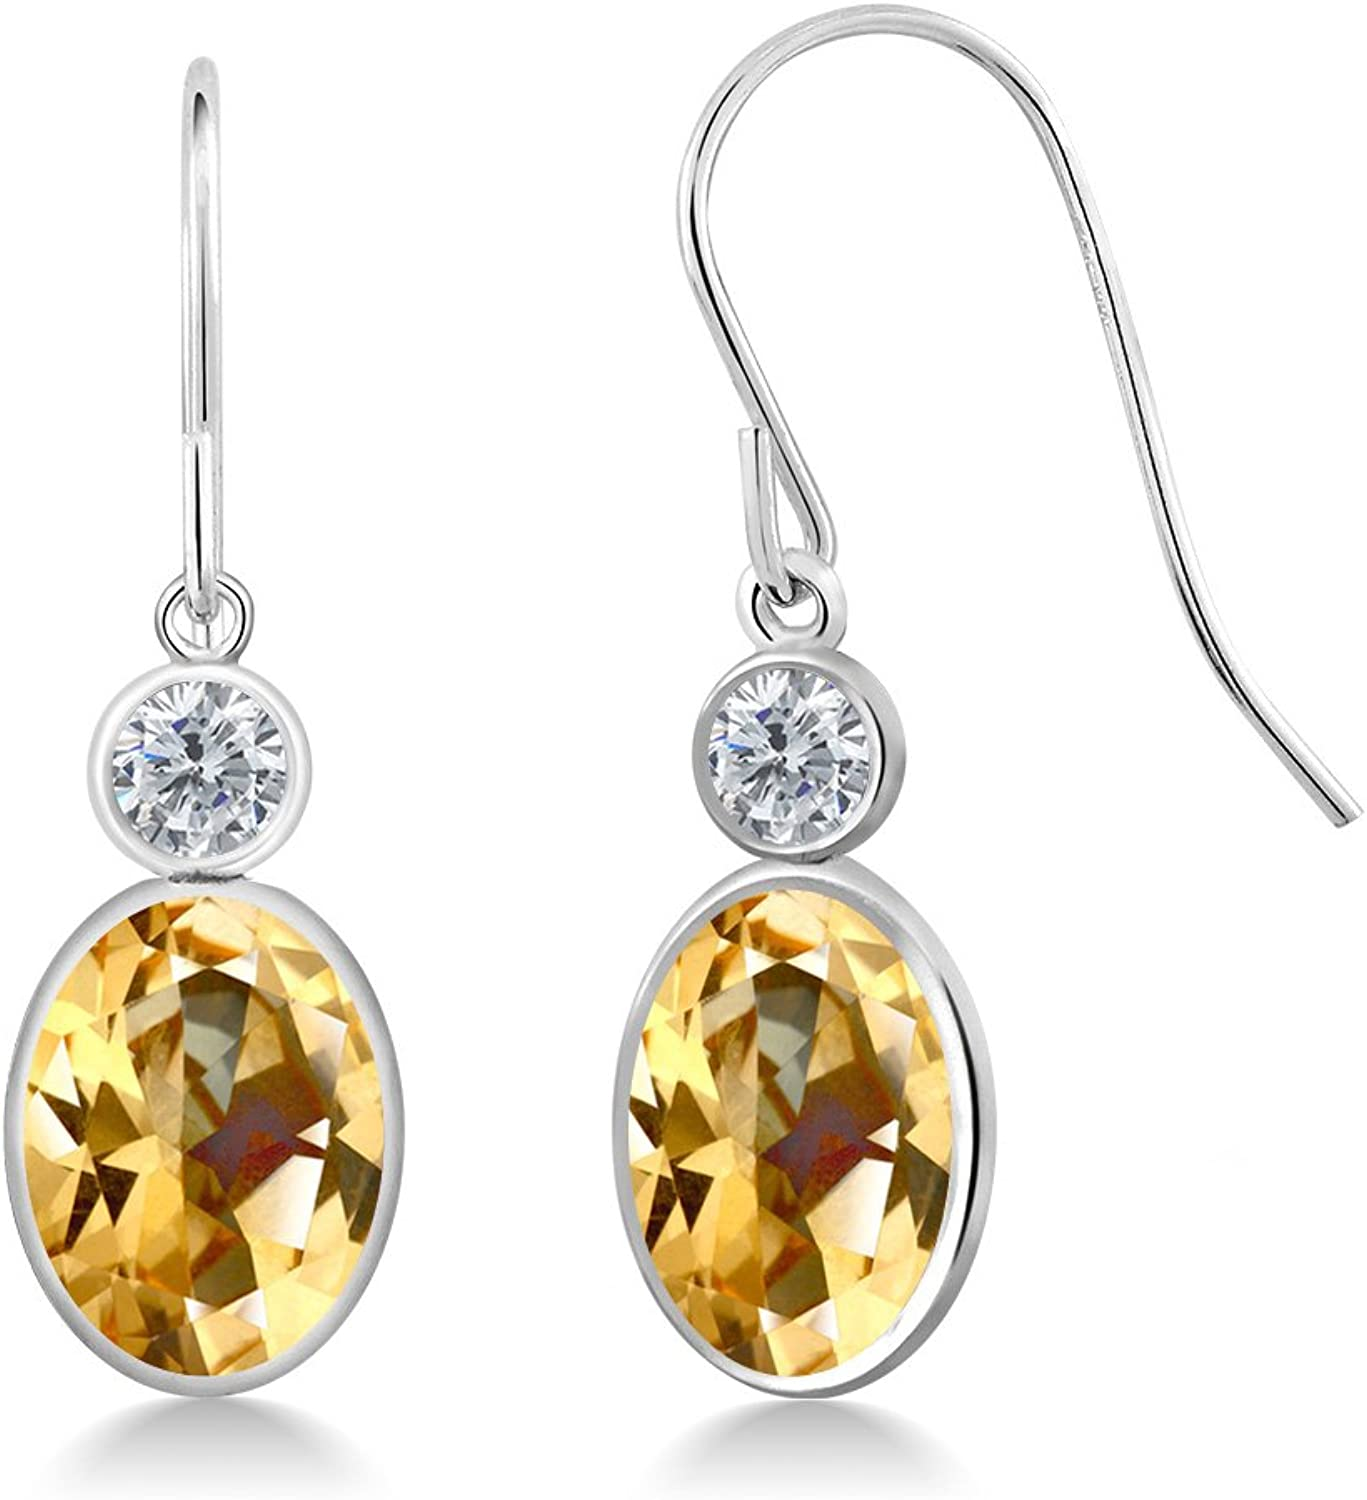 2.84 Ct Honey 14K White gold Earrings Natural Topaz Cut by Swarovski